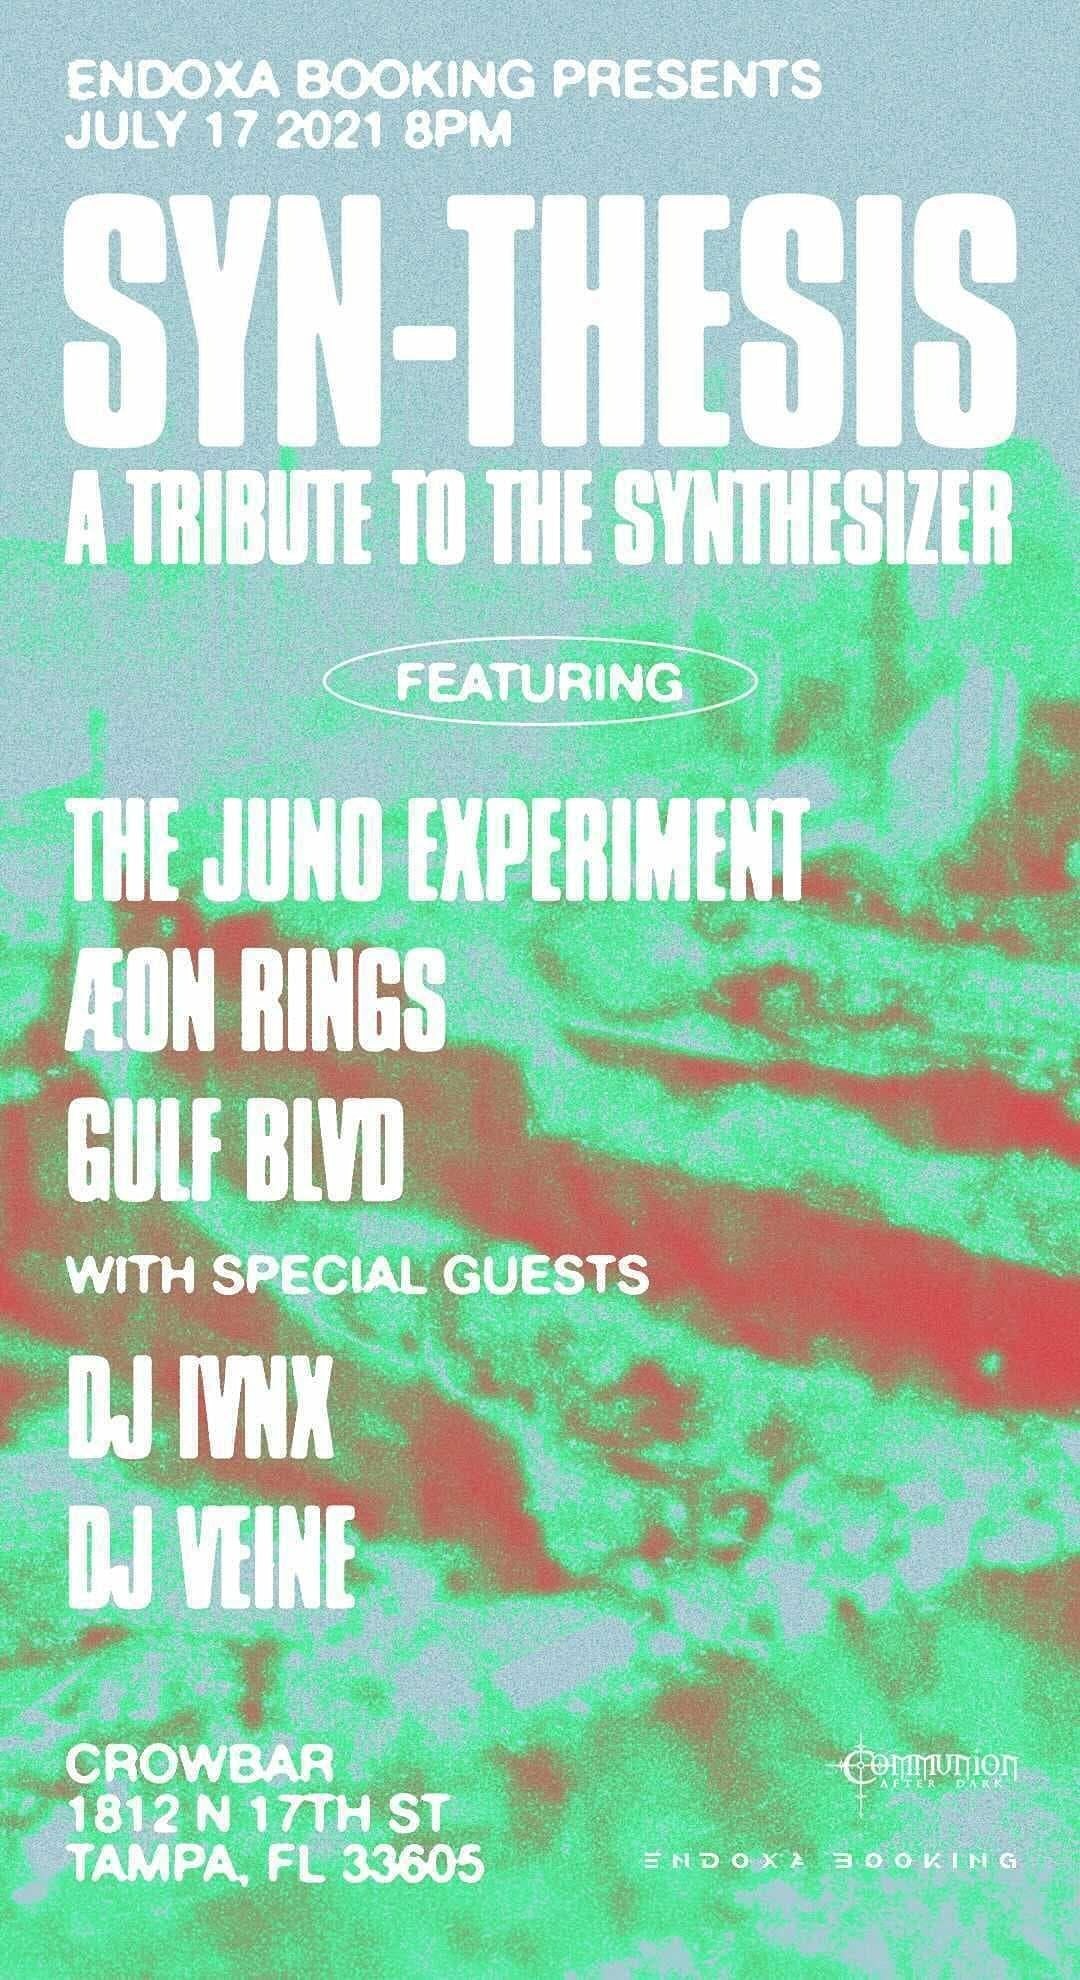 A night of electronic and industrial music with:  The Juno Experiment Aeon Rings Gulf Blvd DJ IVNX DJ VEINE